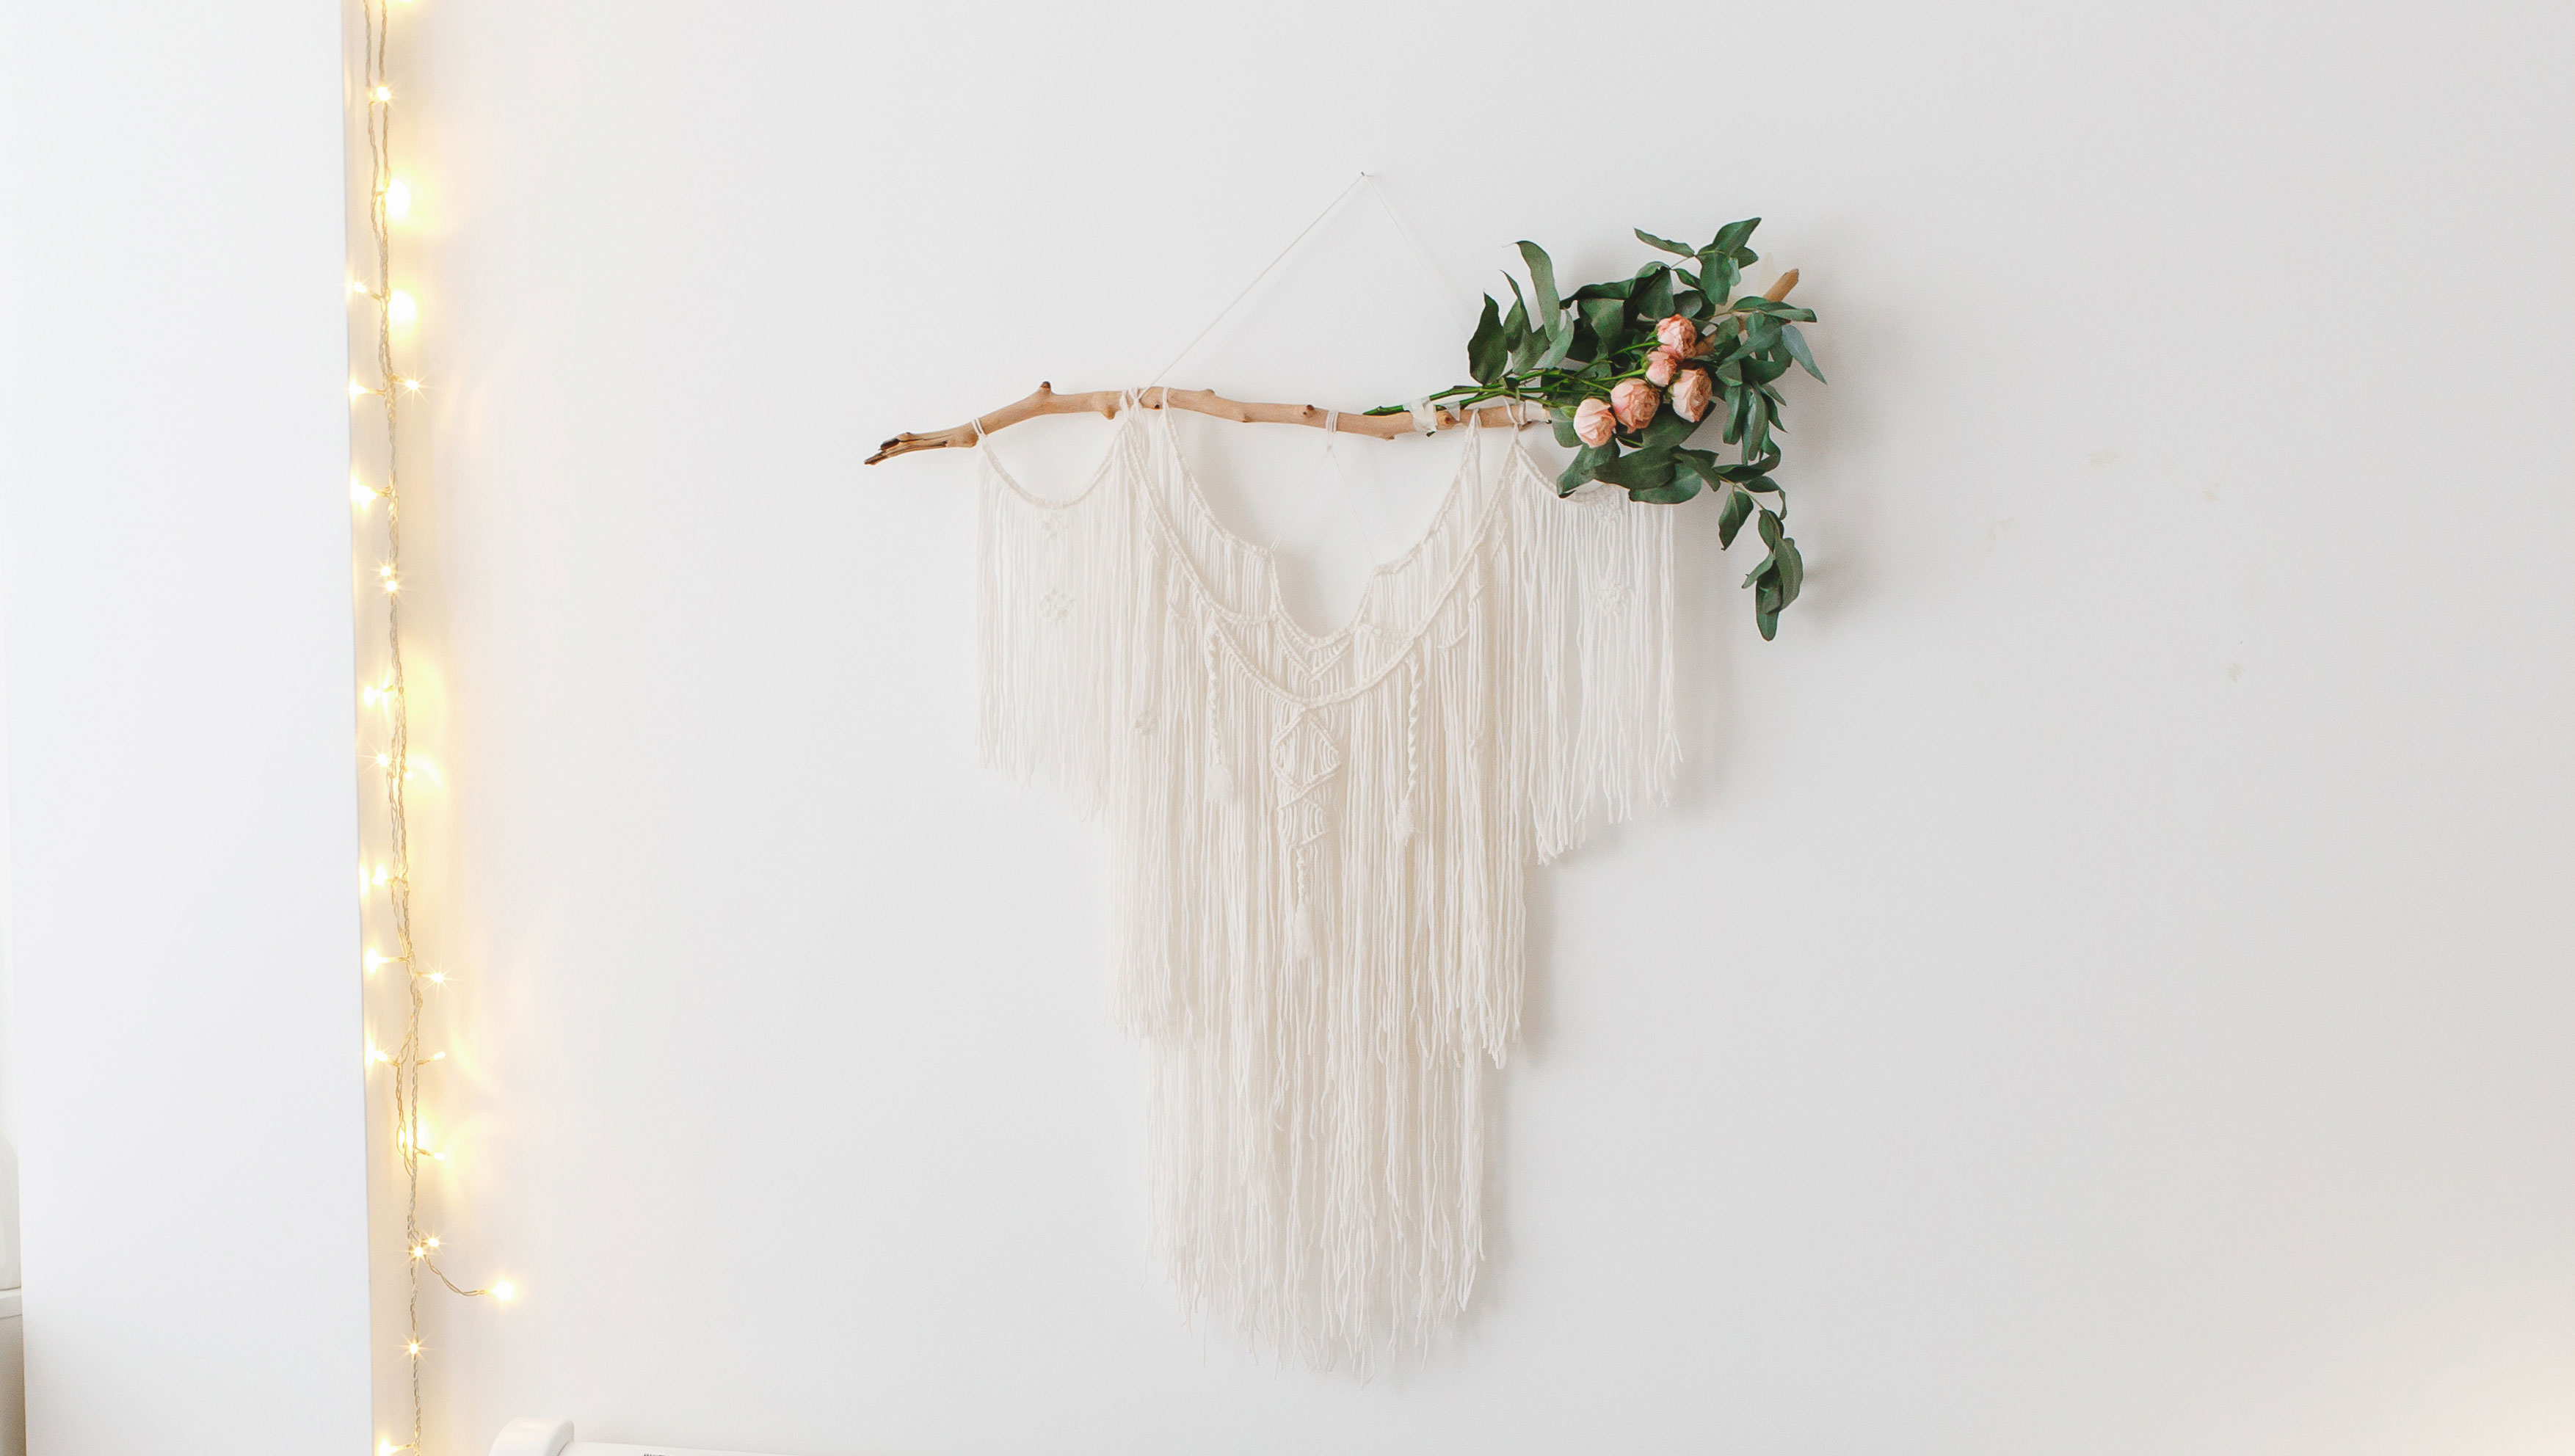 Boho Macrame Wall Hangings to Elevate Your Space